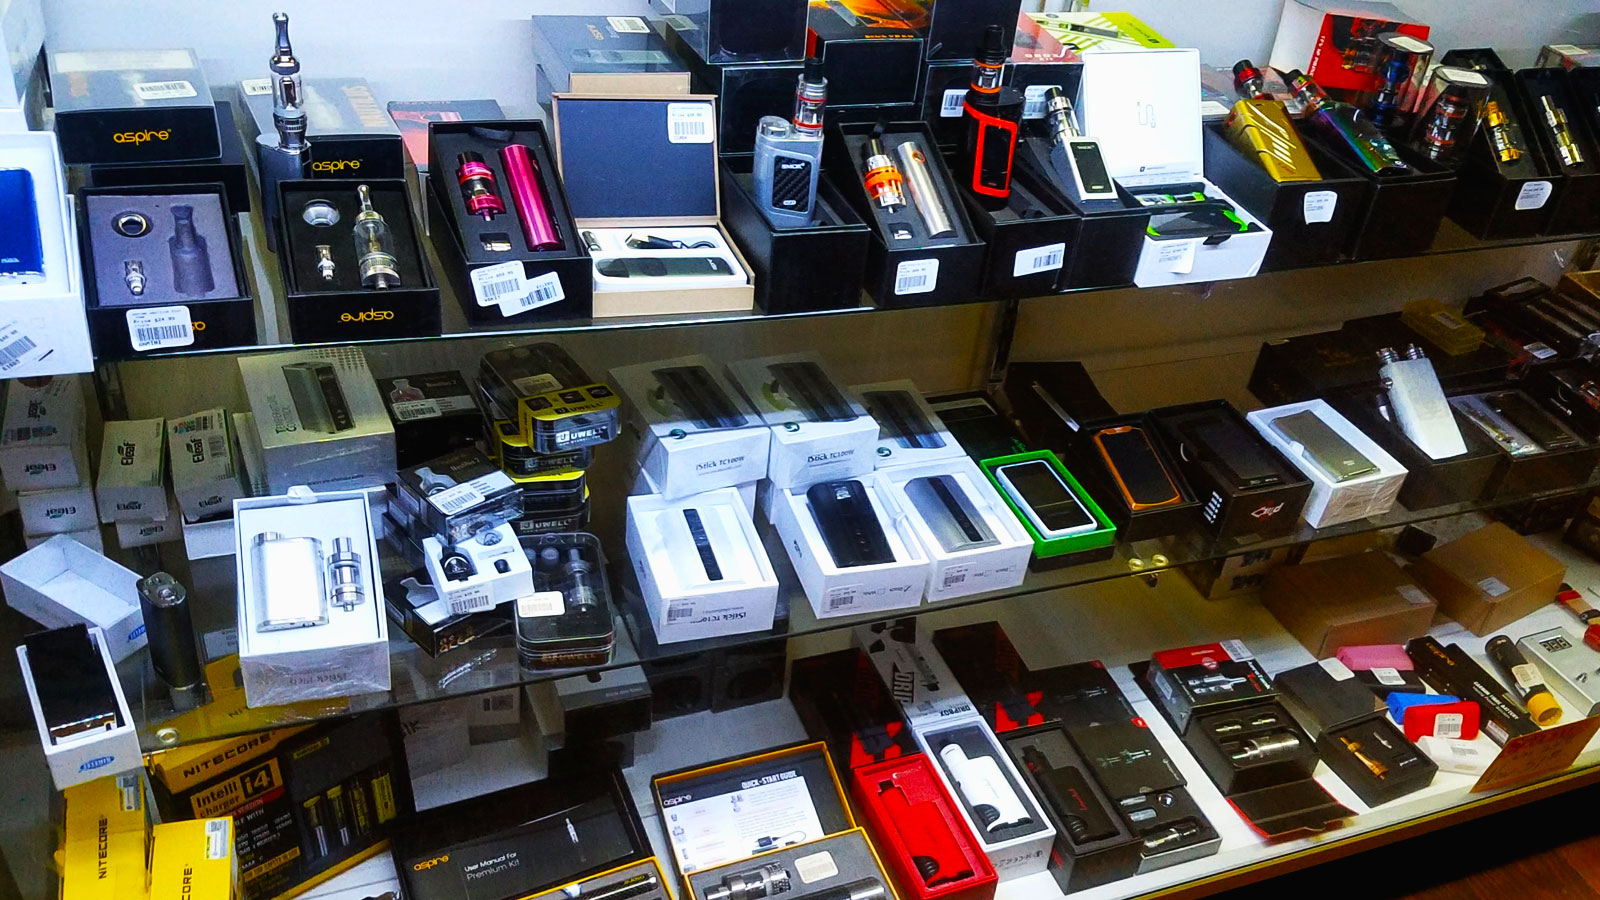 A Large Selection of Vapor and E-Cig Products